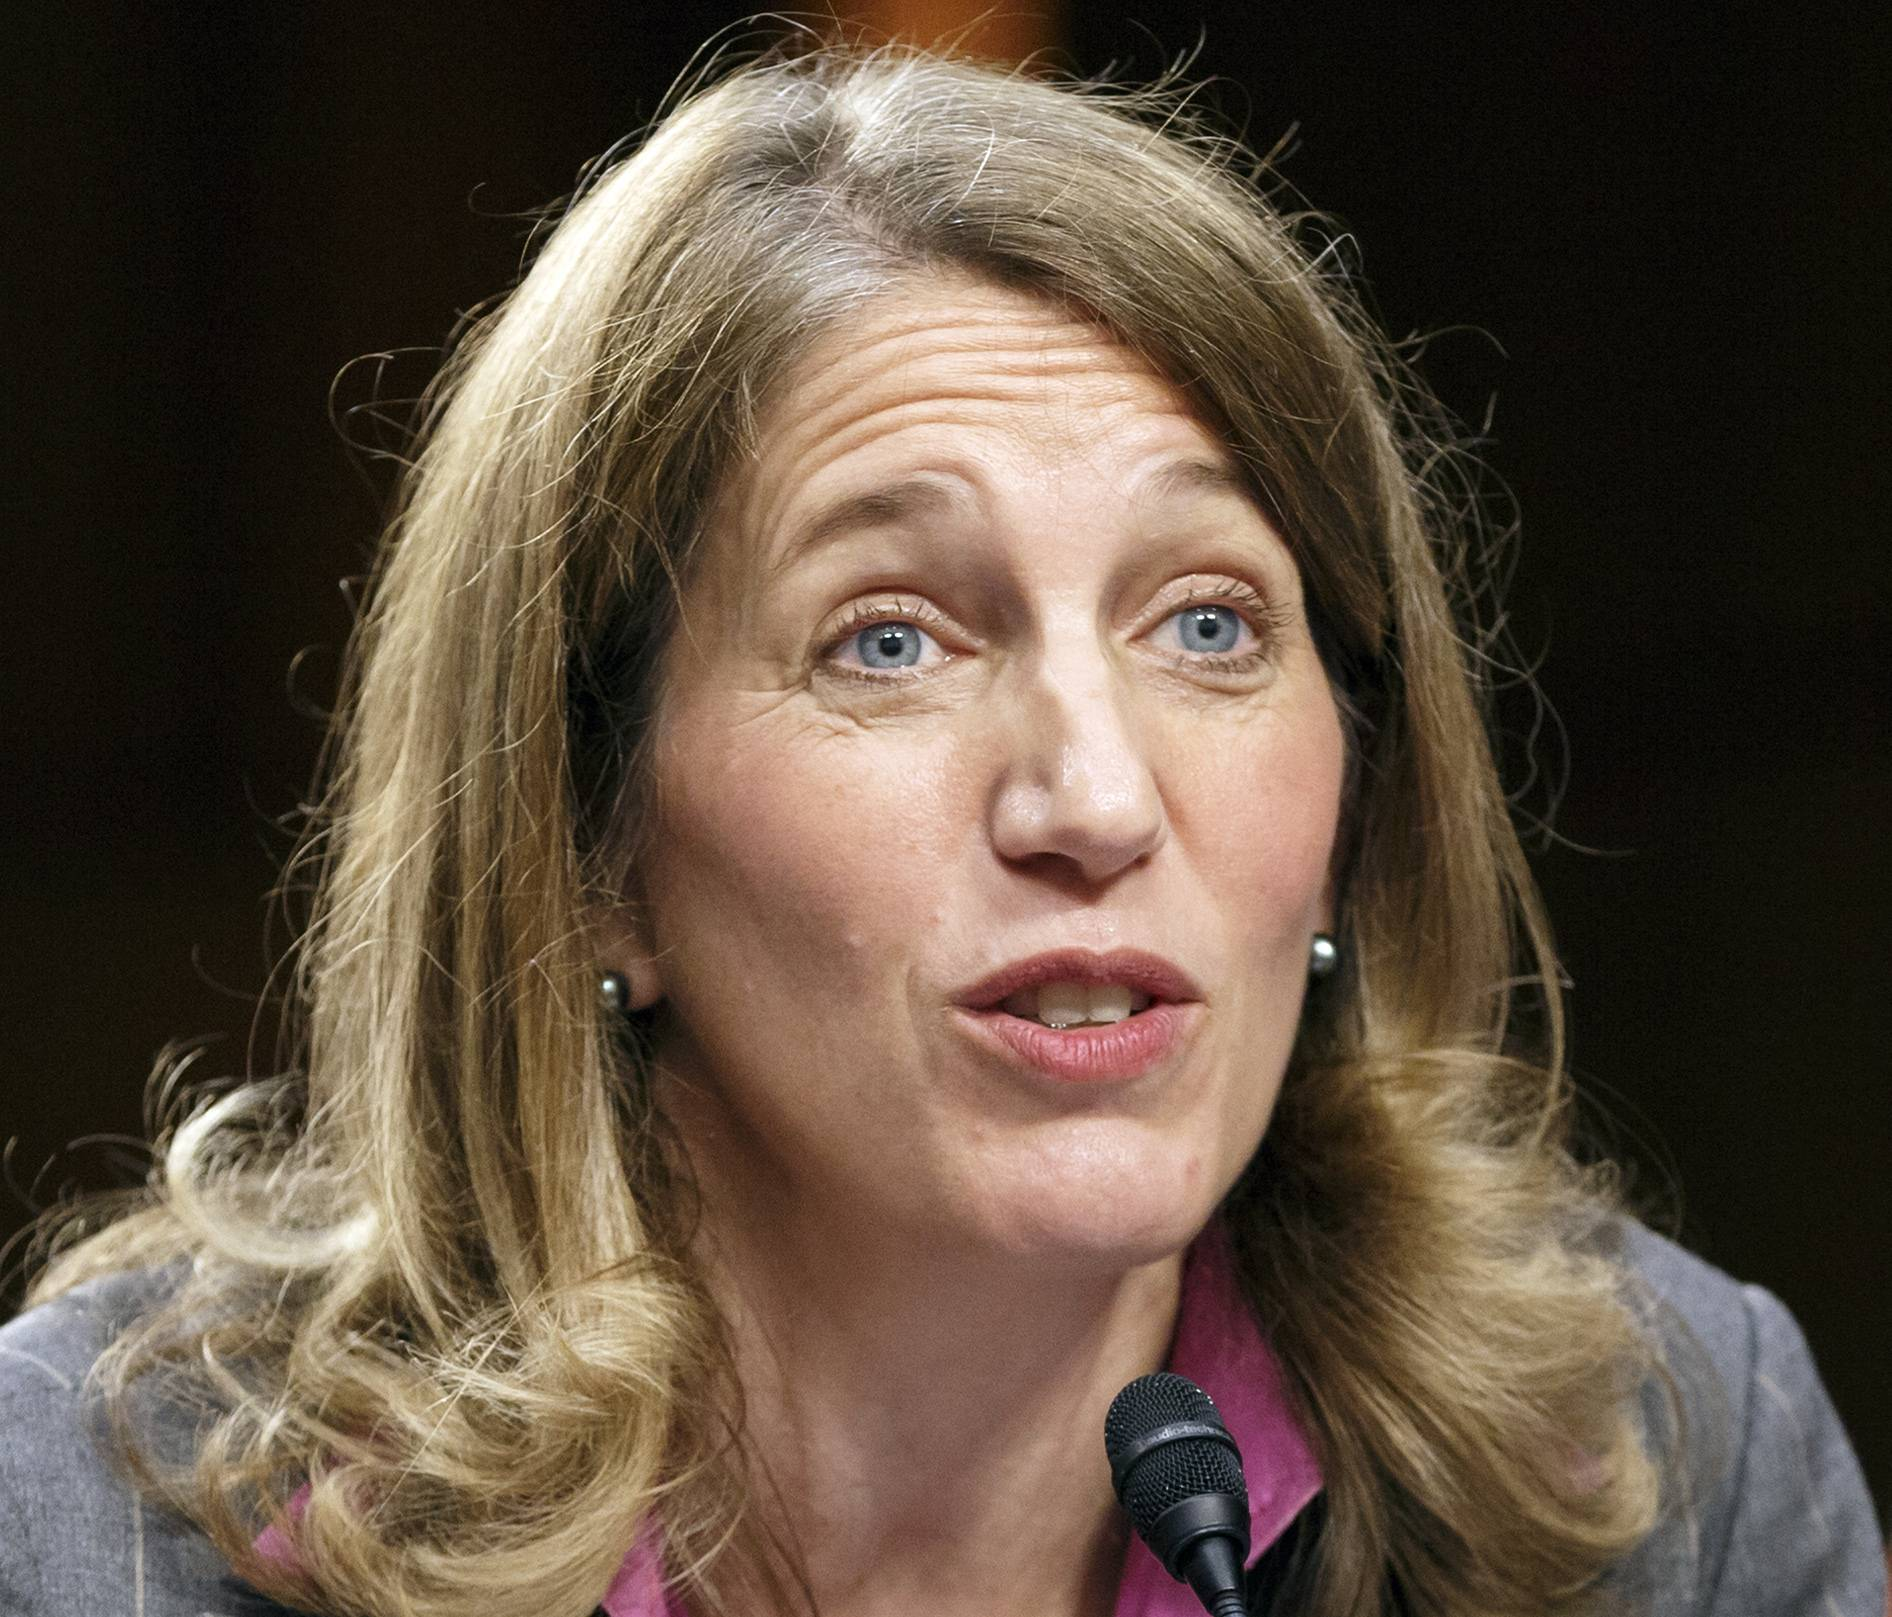 This May 14, 2014 file photo shows then-Health and Human Service Secretary nominee Sylvia Mathews Burwell testifying on Capitol Hill in Washington. The Obama administration has been struggling to clear up data discrepancies that could potentially jeopardize coverage for millions under the health overhaul, the government's health care fraud watchdog reported.